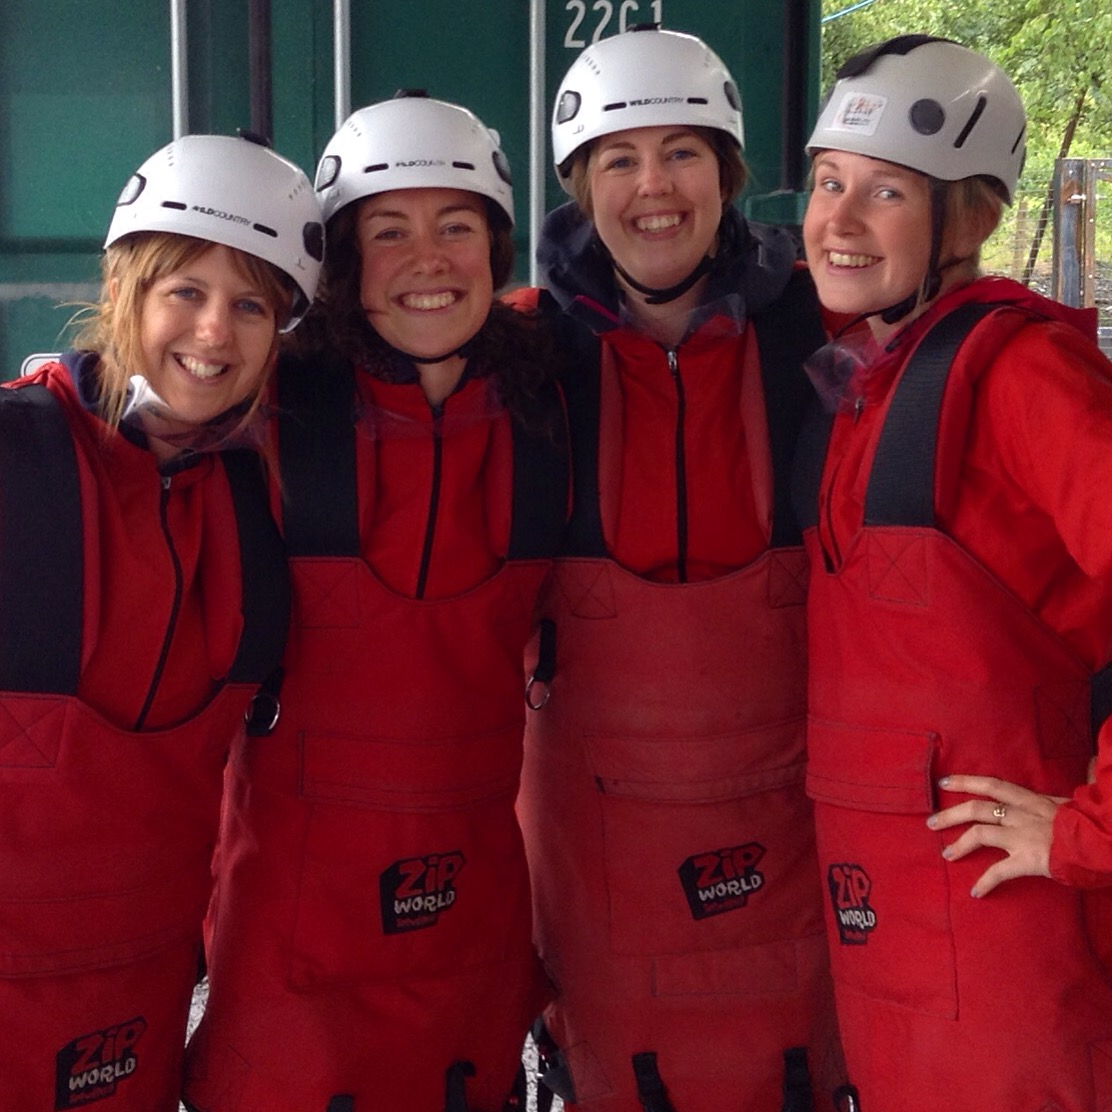 Sunday saw us at Zip World and getting on the Velocity zipwire!